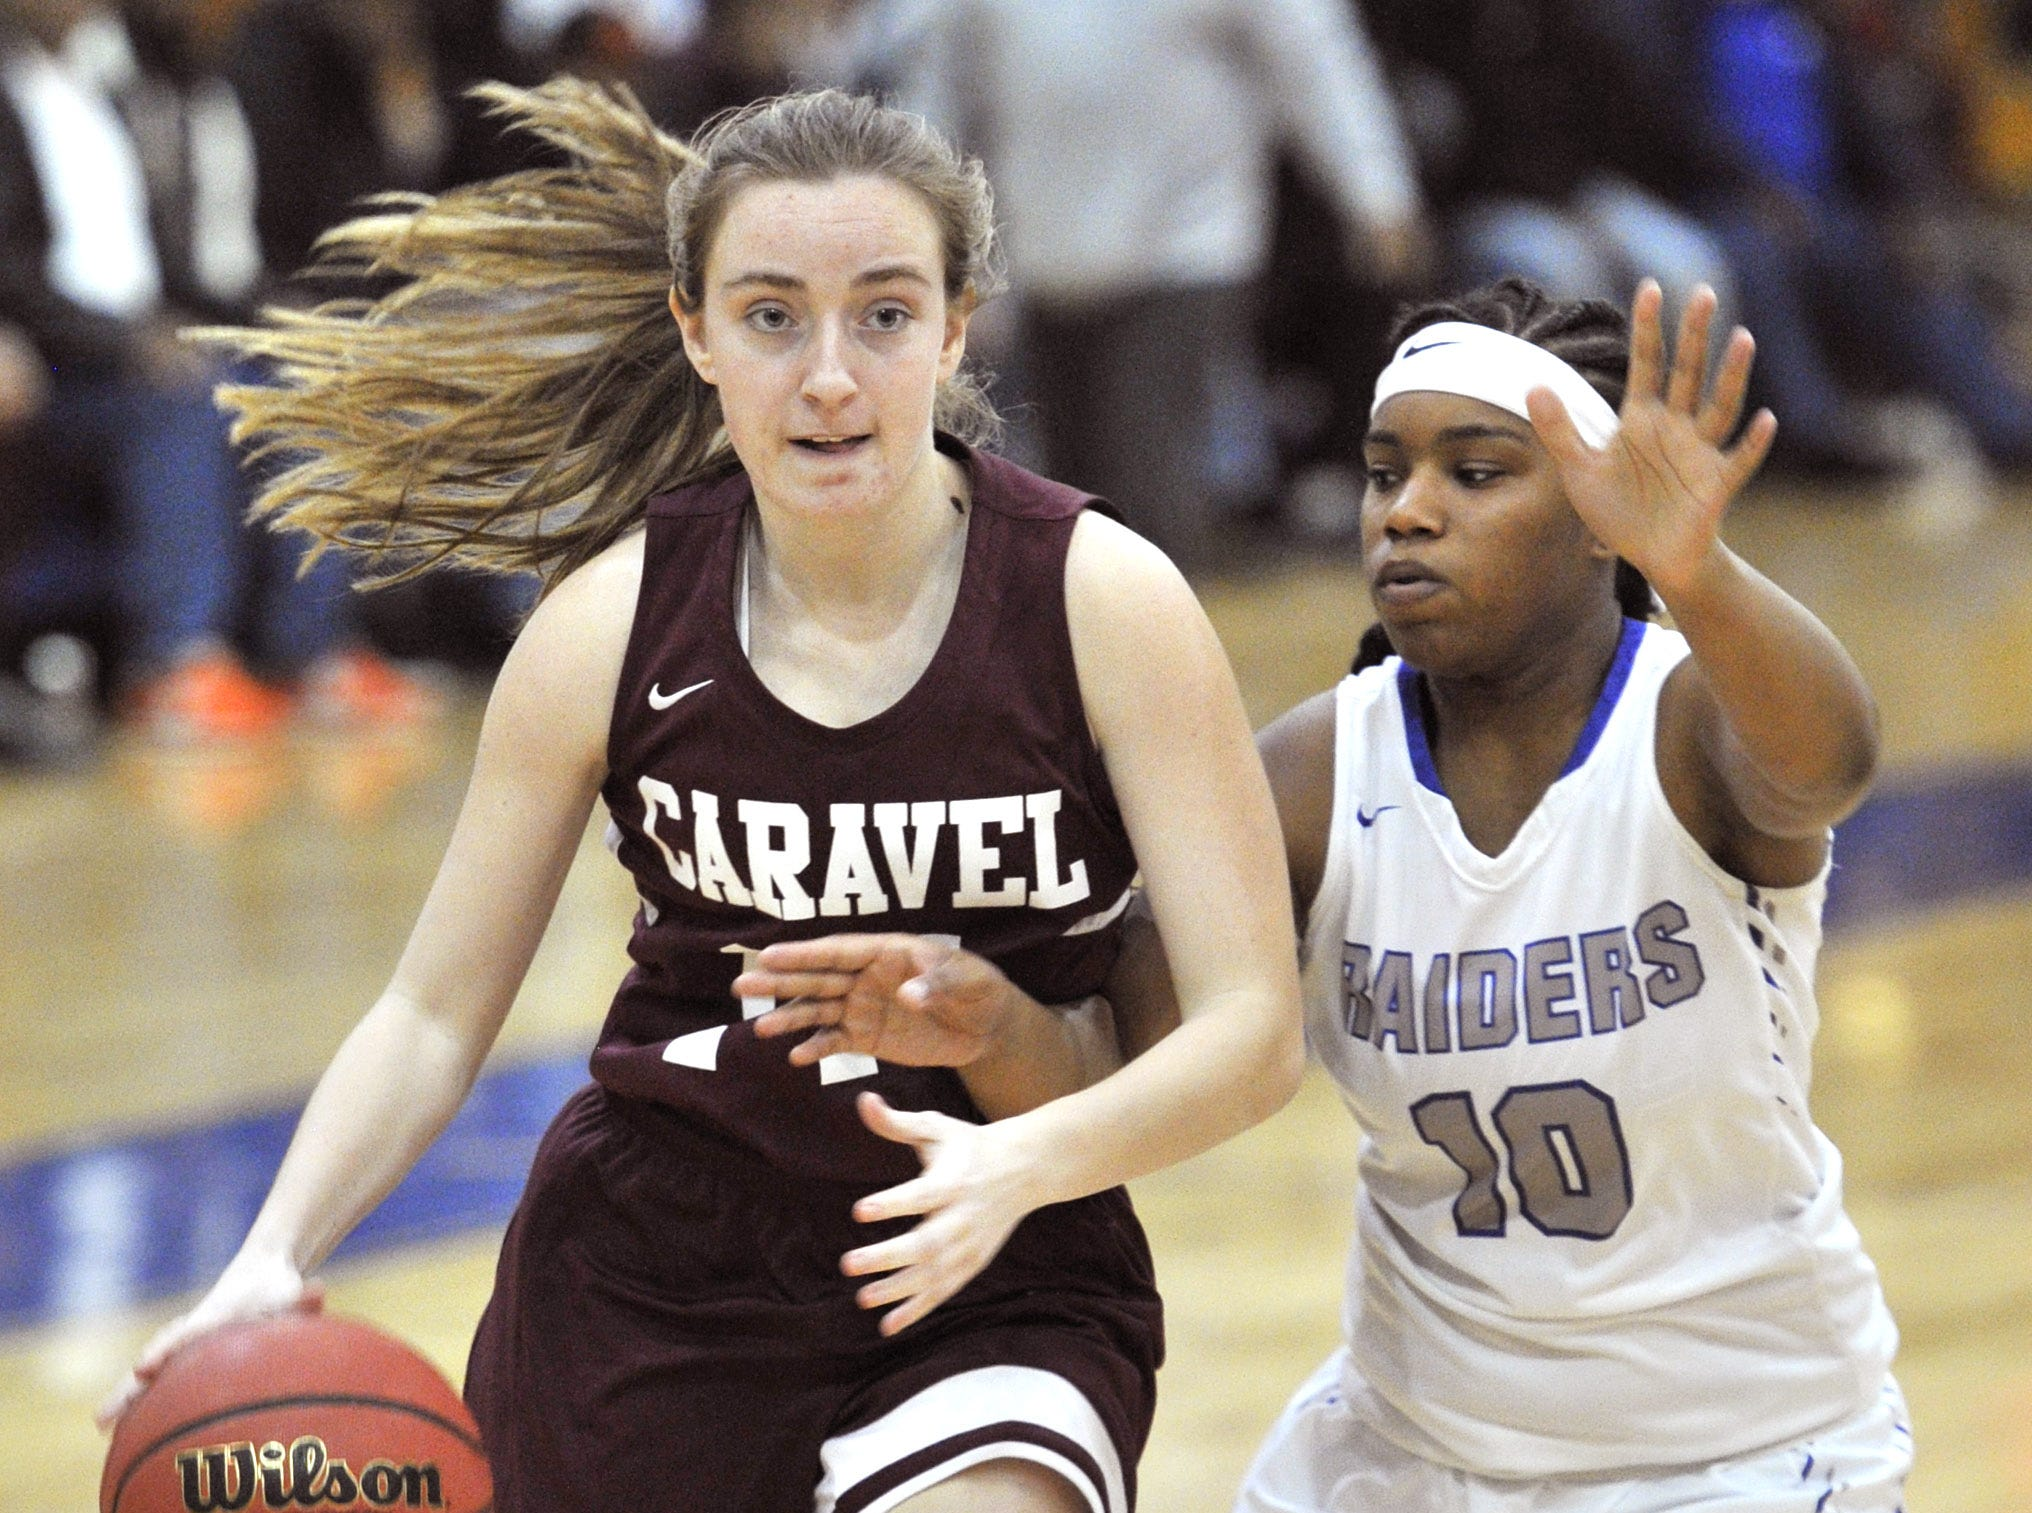 Caravel's Miranda Parretta brings the ball up court with Tykeya Nelson trying to steal..  GARY EMEIGH/Special To The News Journal